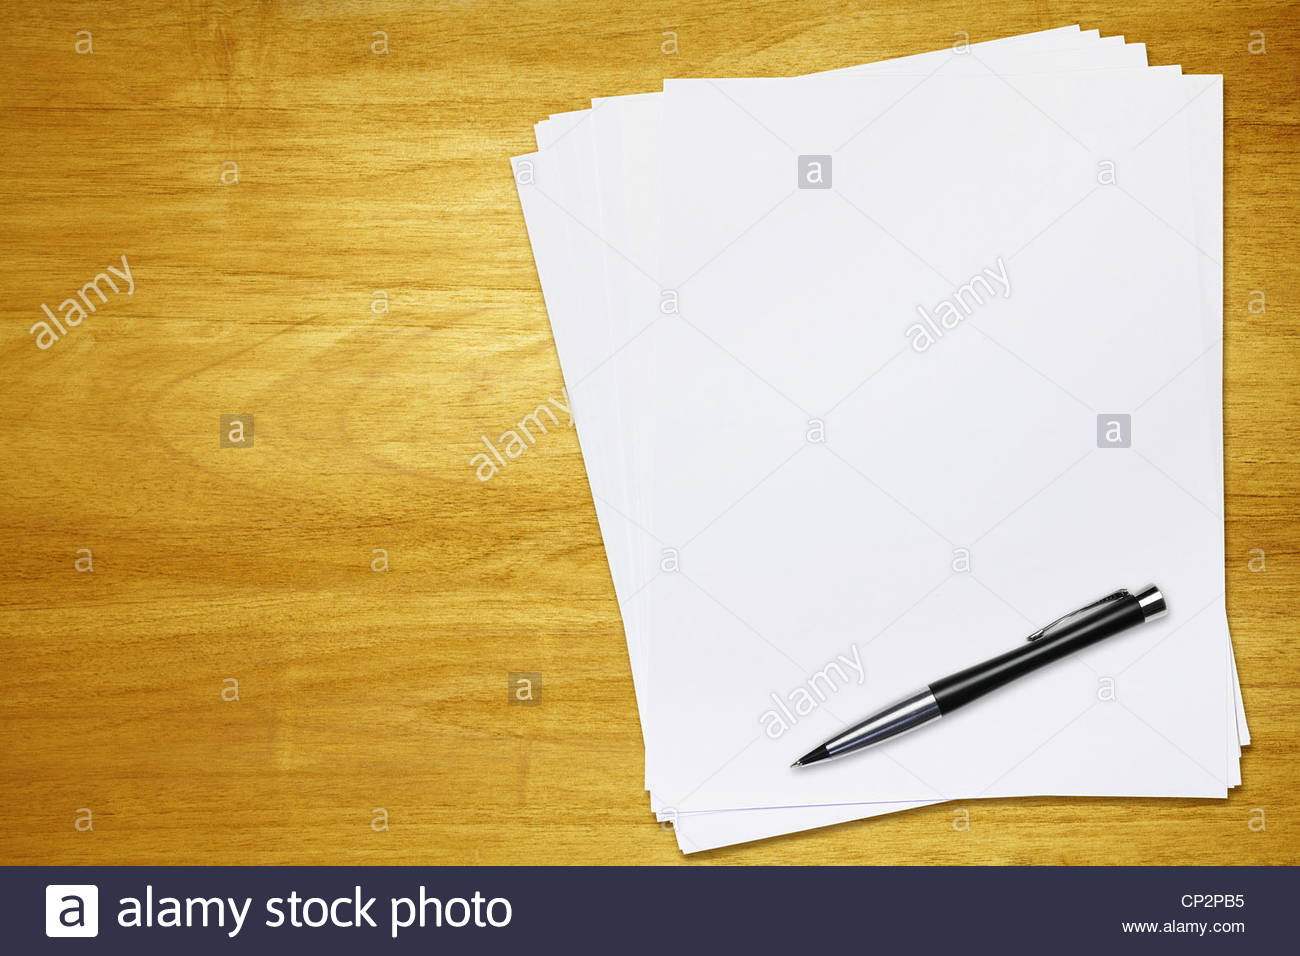 blank paper - Stock Image